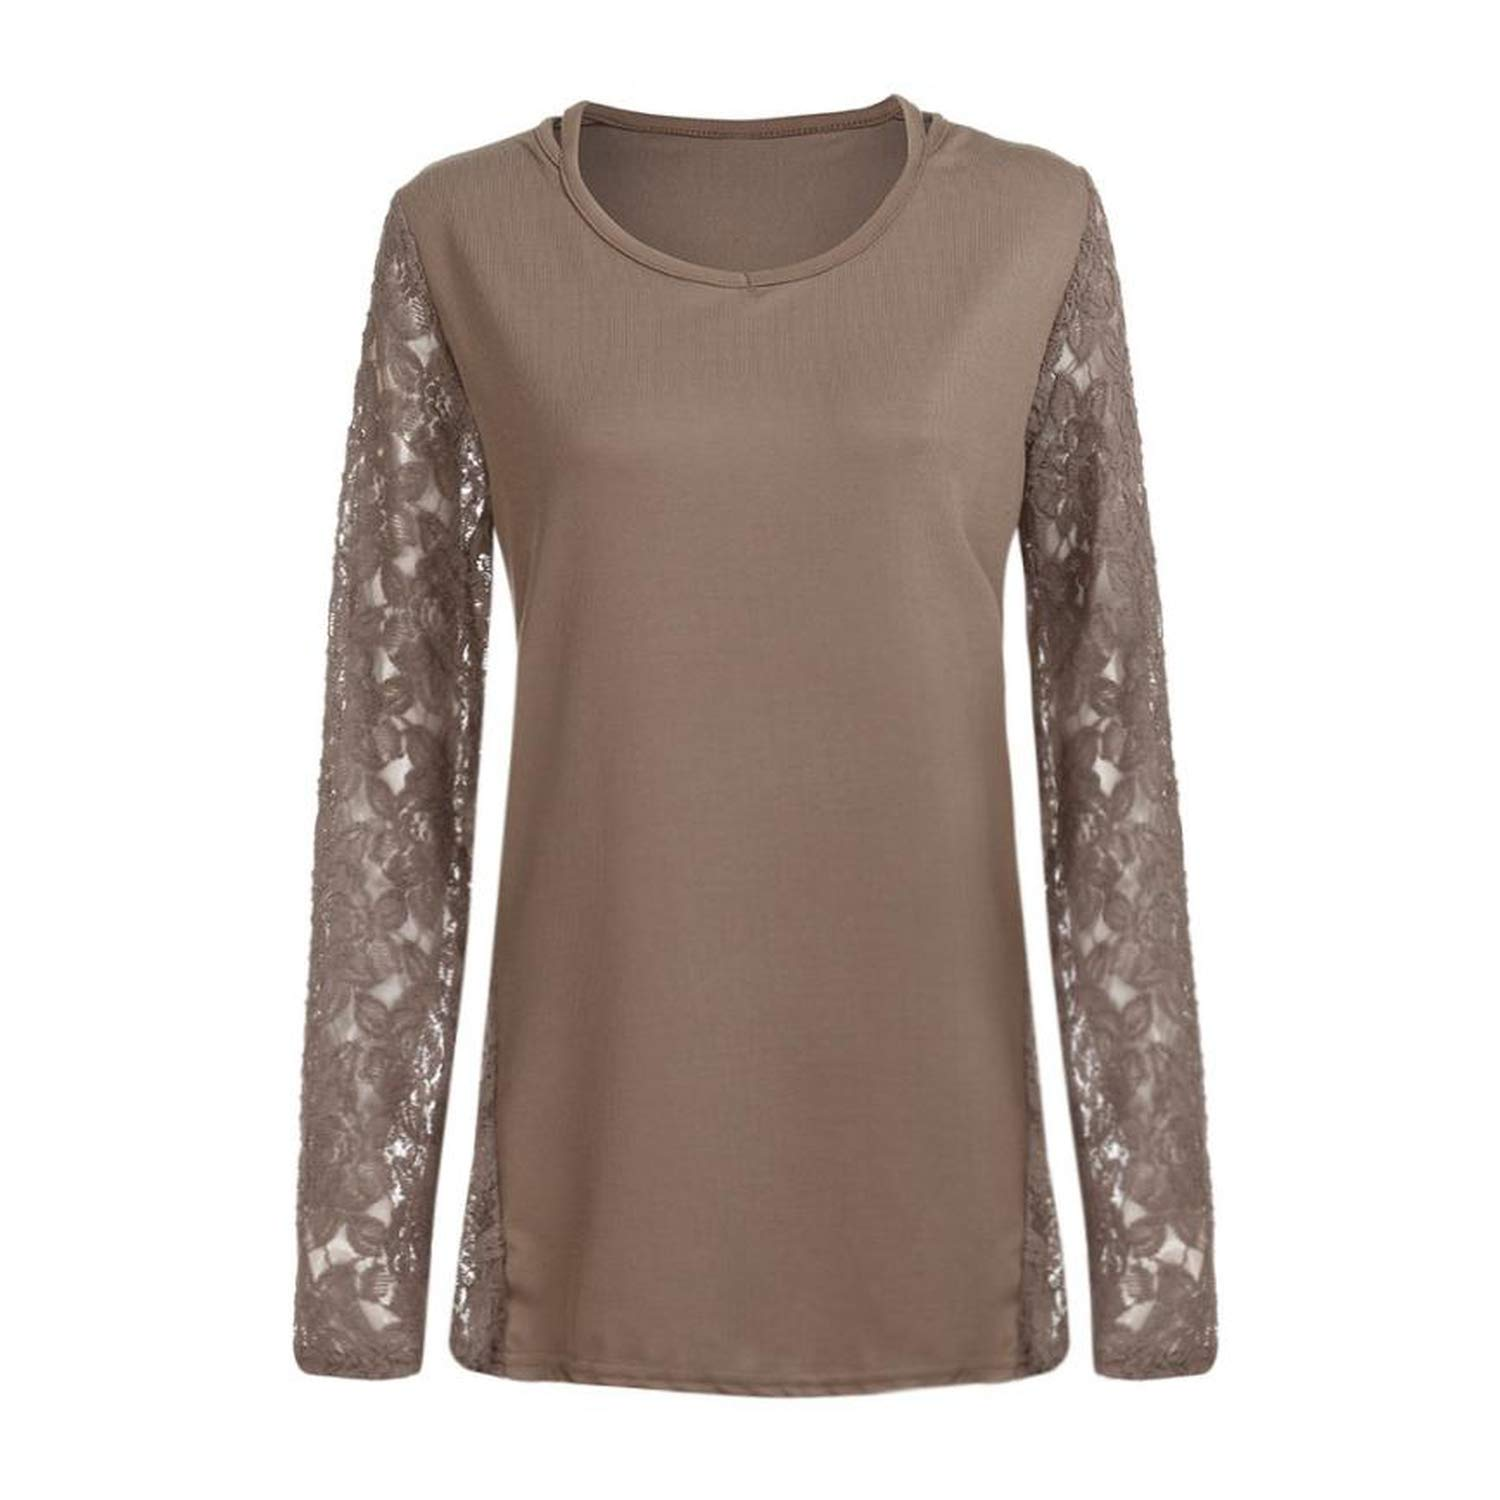 Amazon.com: amolly sweater Women Lace Sexy Long Casual Sleeve Crochet Tops Pullover Pull Femme 2018 Fashion,Khaki,S,United States: Clothing